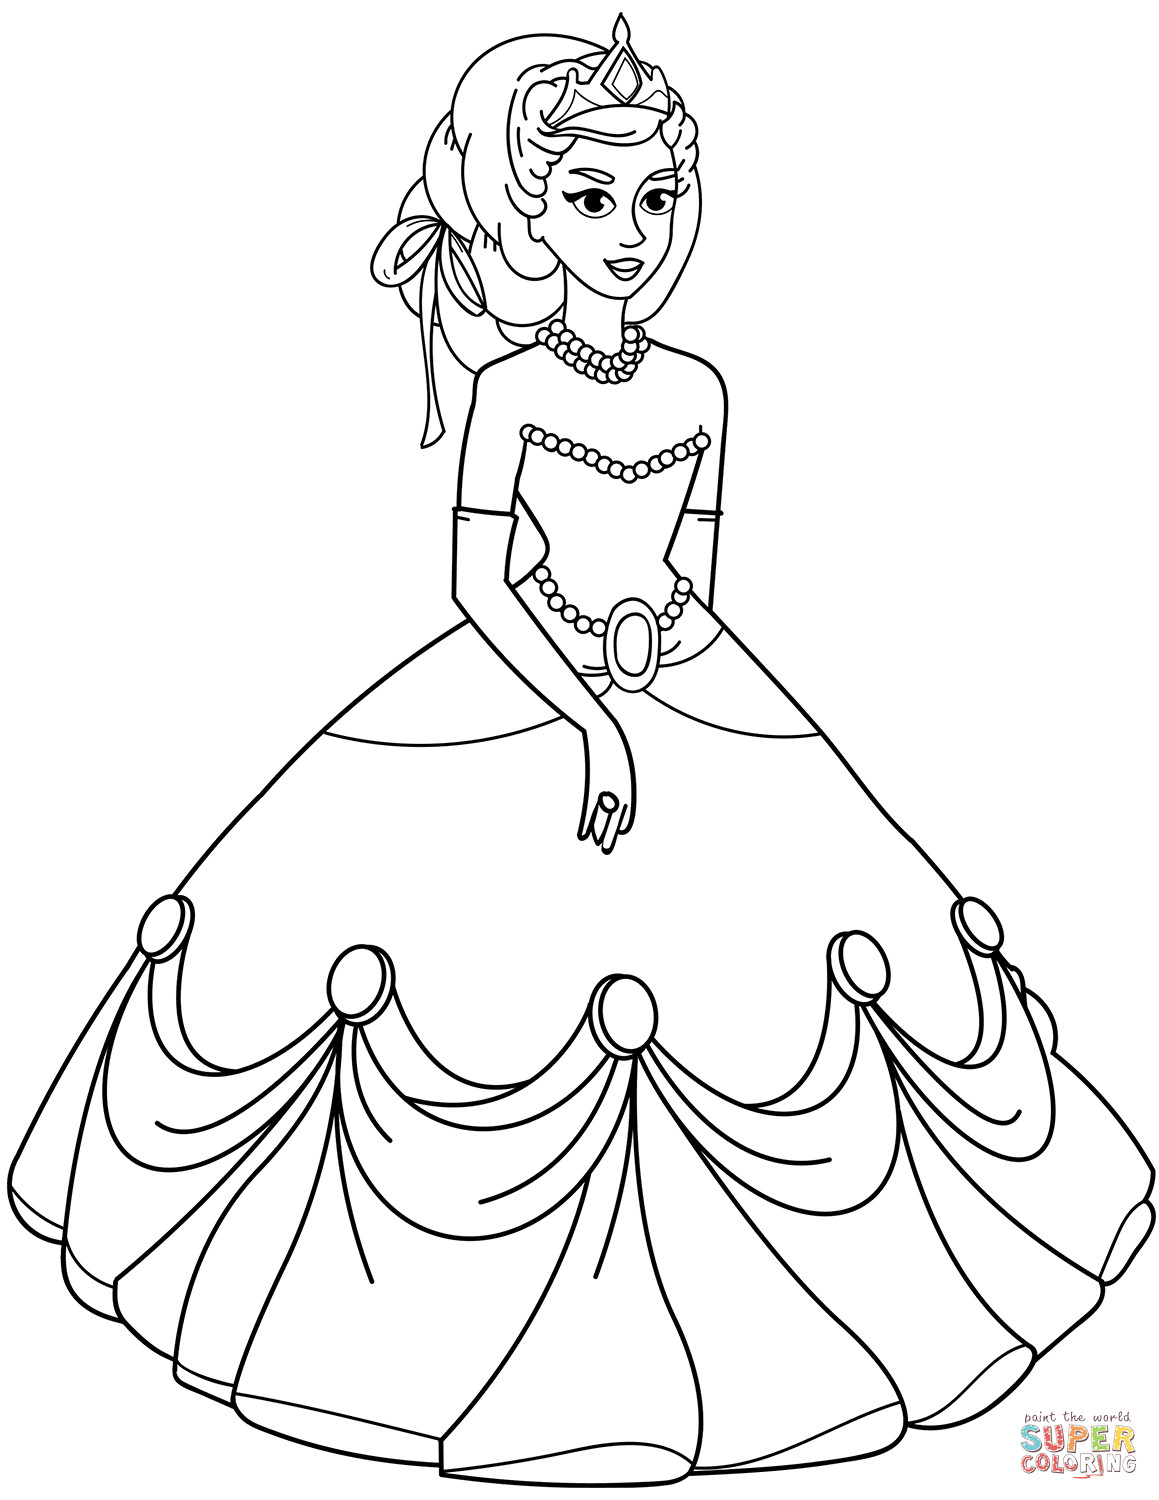 Free Coloring Pages Princesses  Princess Coloring Pages